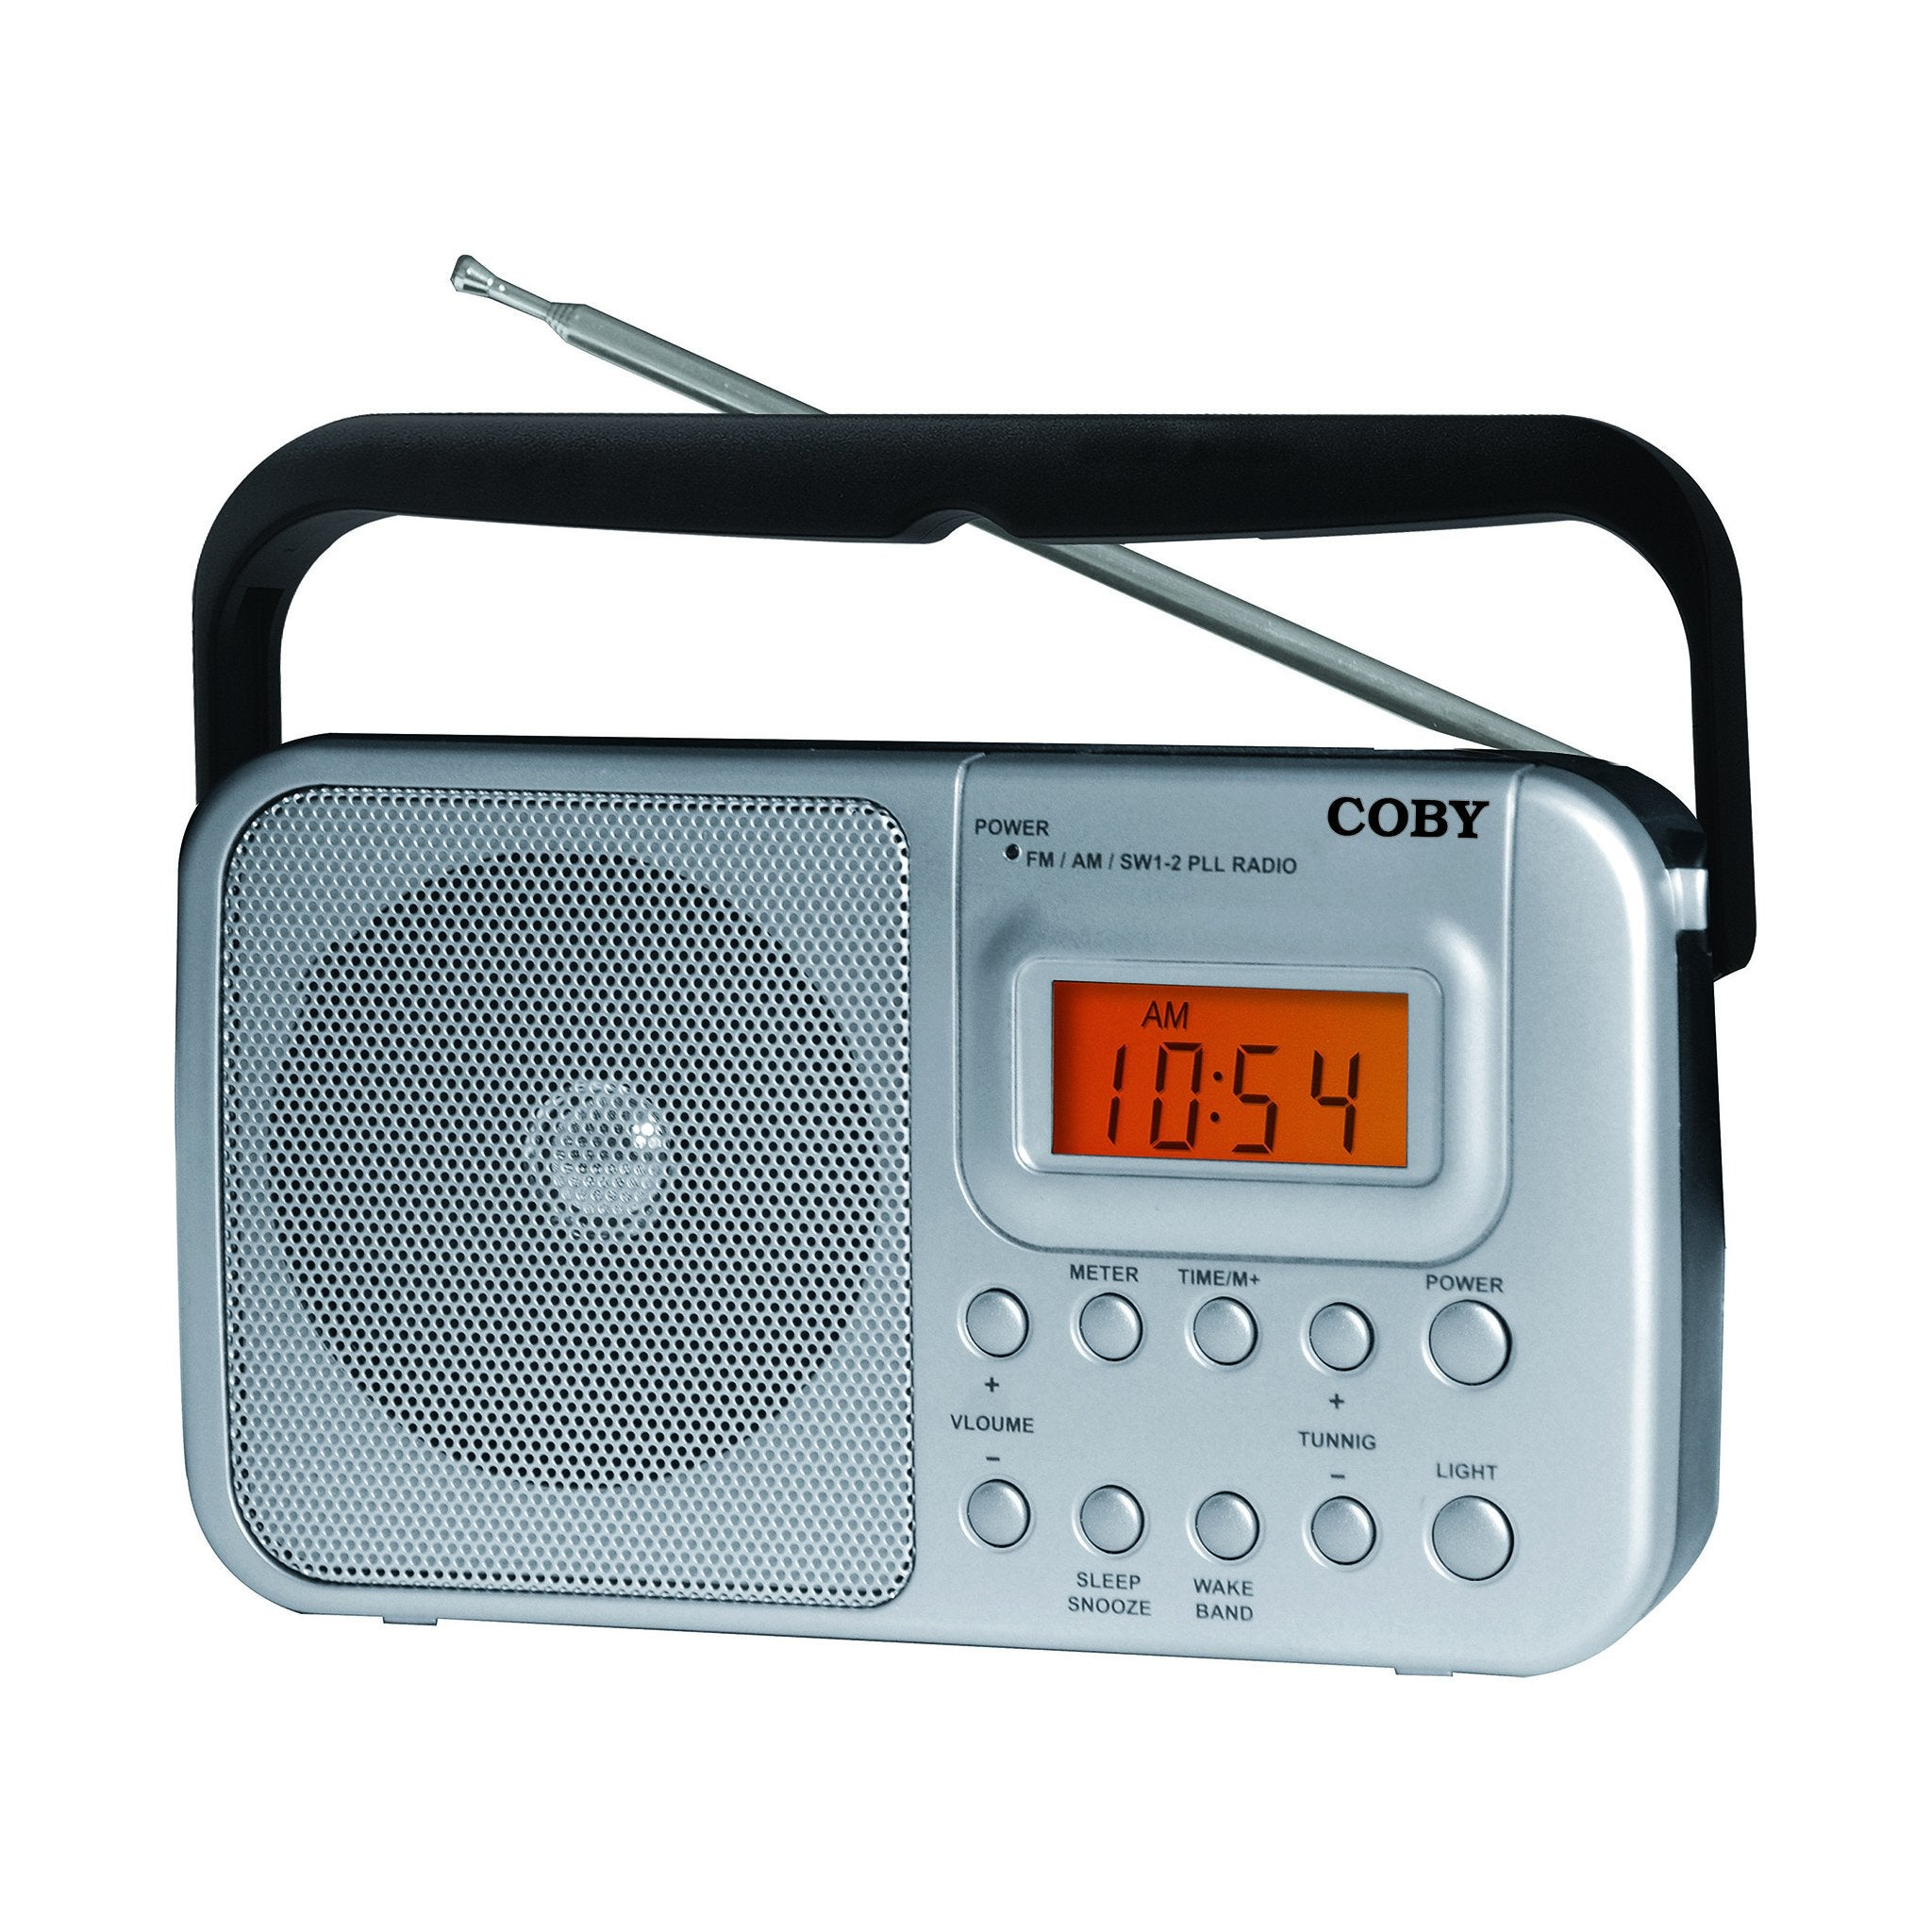 Portable AM/FM Shortwave Radio